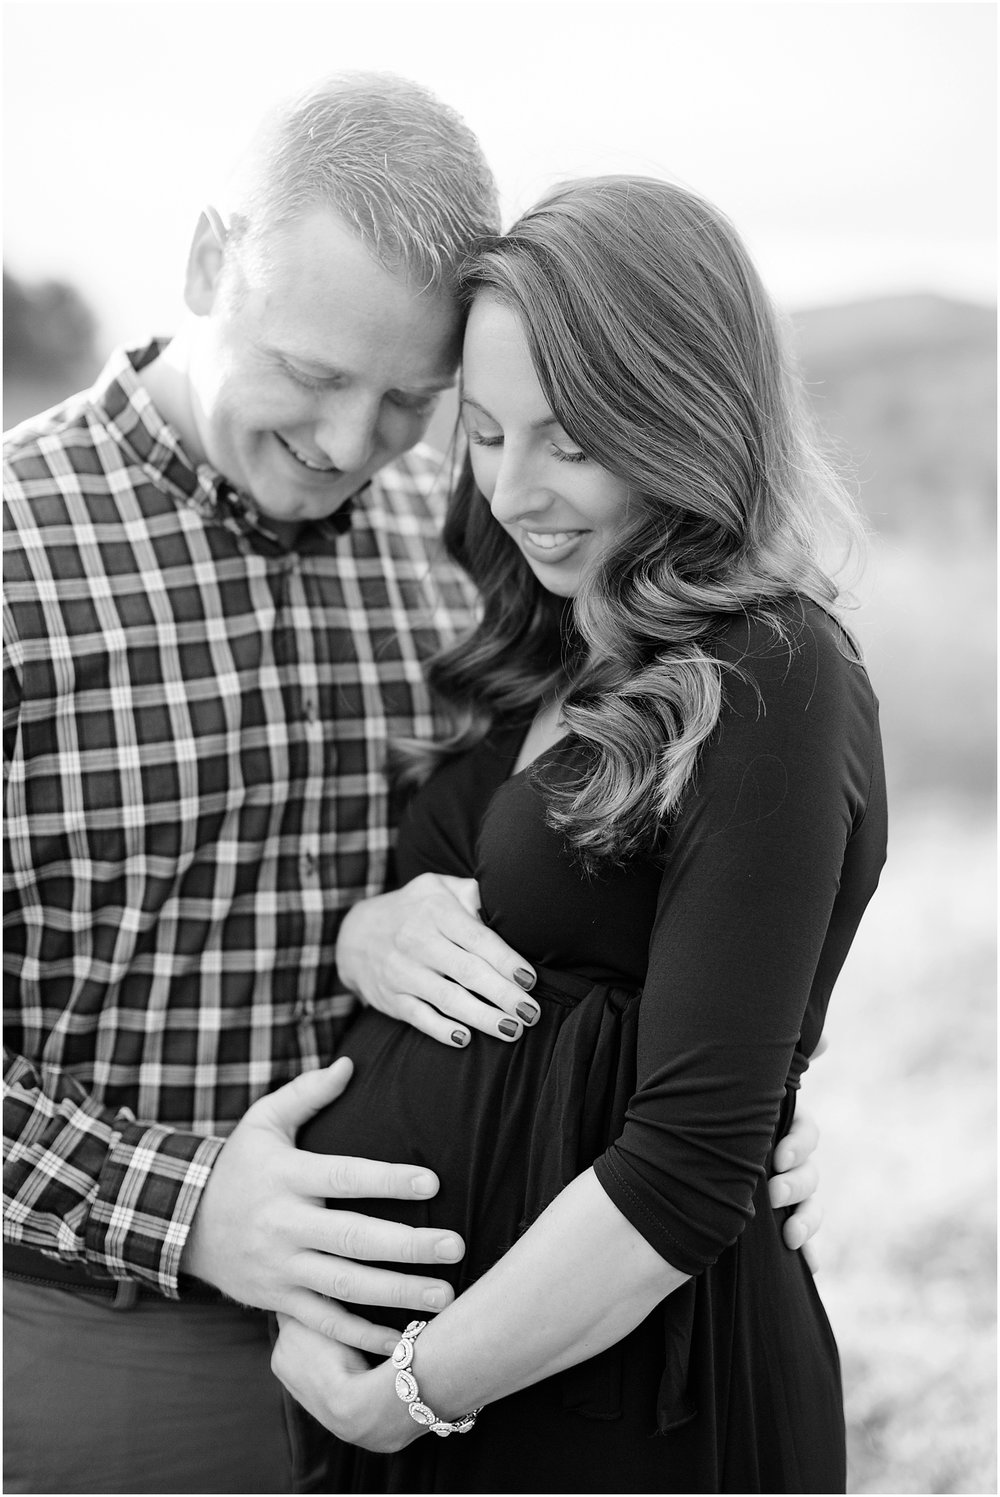 Ashley Powell Photography Hannah Fallion Maternity Blog Images_0018.jpg